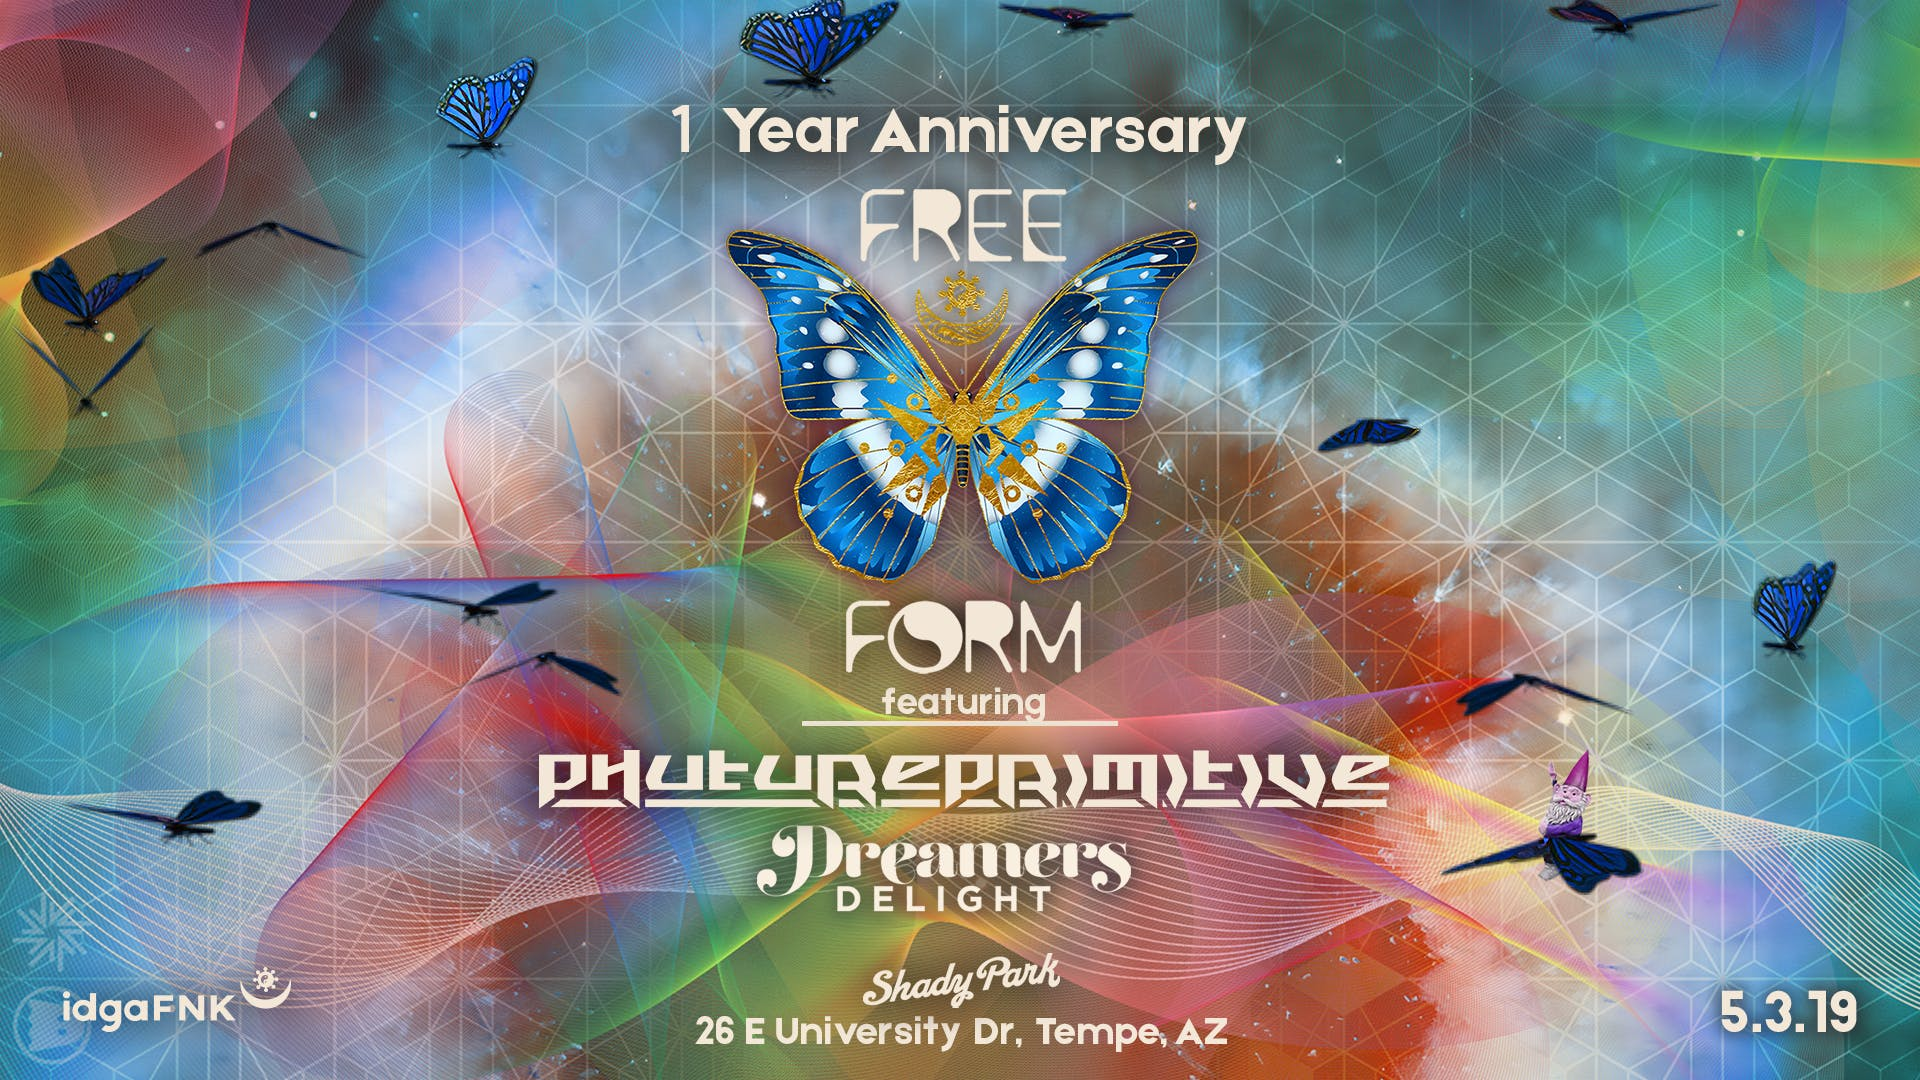 Free Form 1 Year Anniversary ft. Phutureprimitive & Dreamers Delight